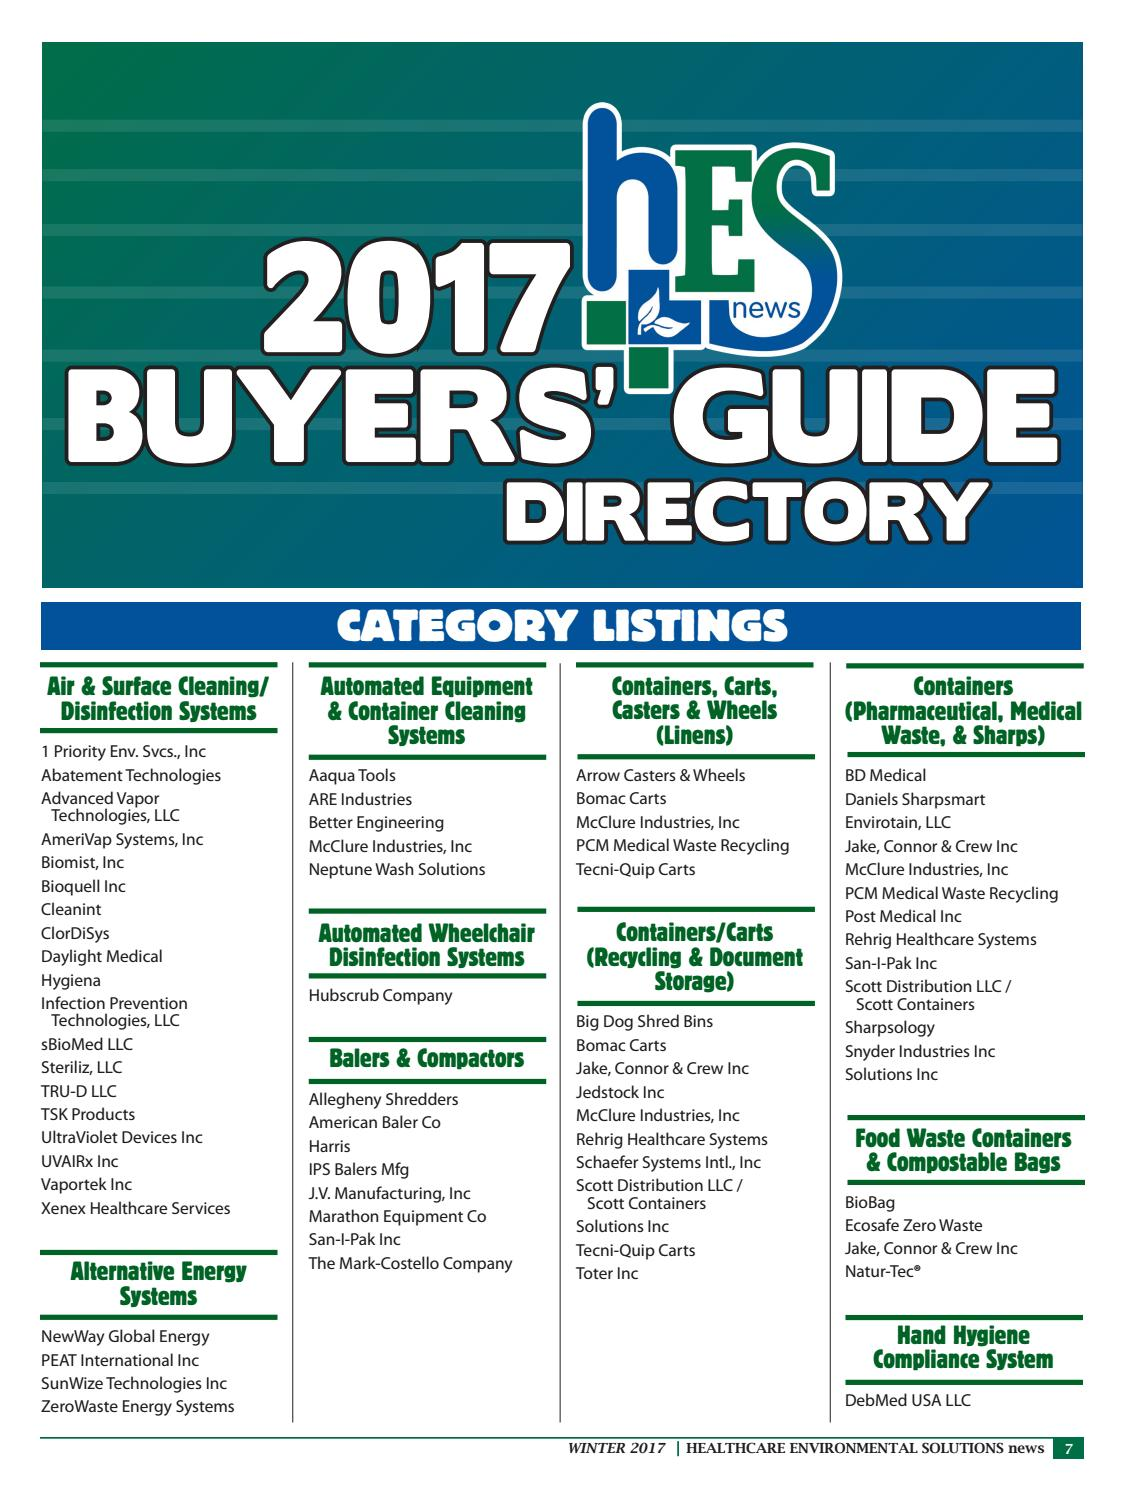 Hes 2017buyersguide by Downing and Associates - issuu